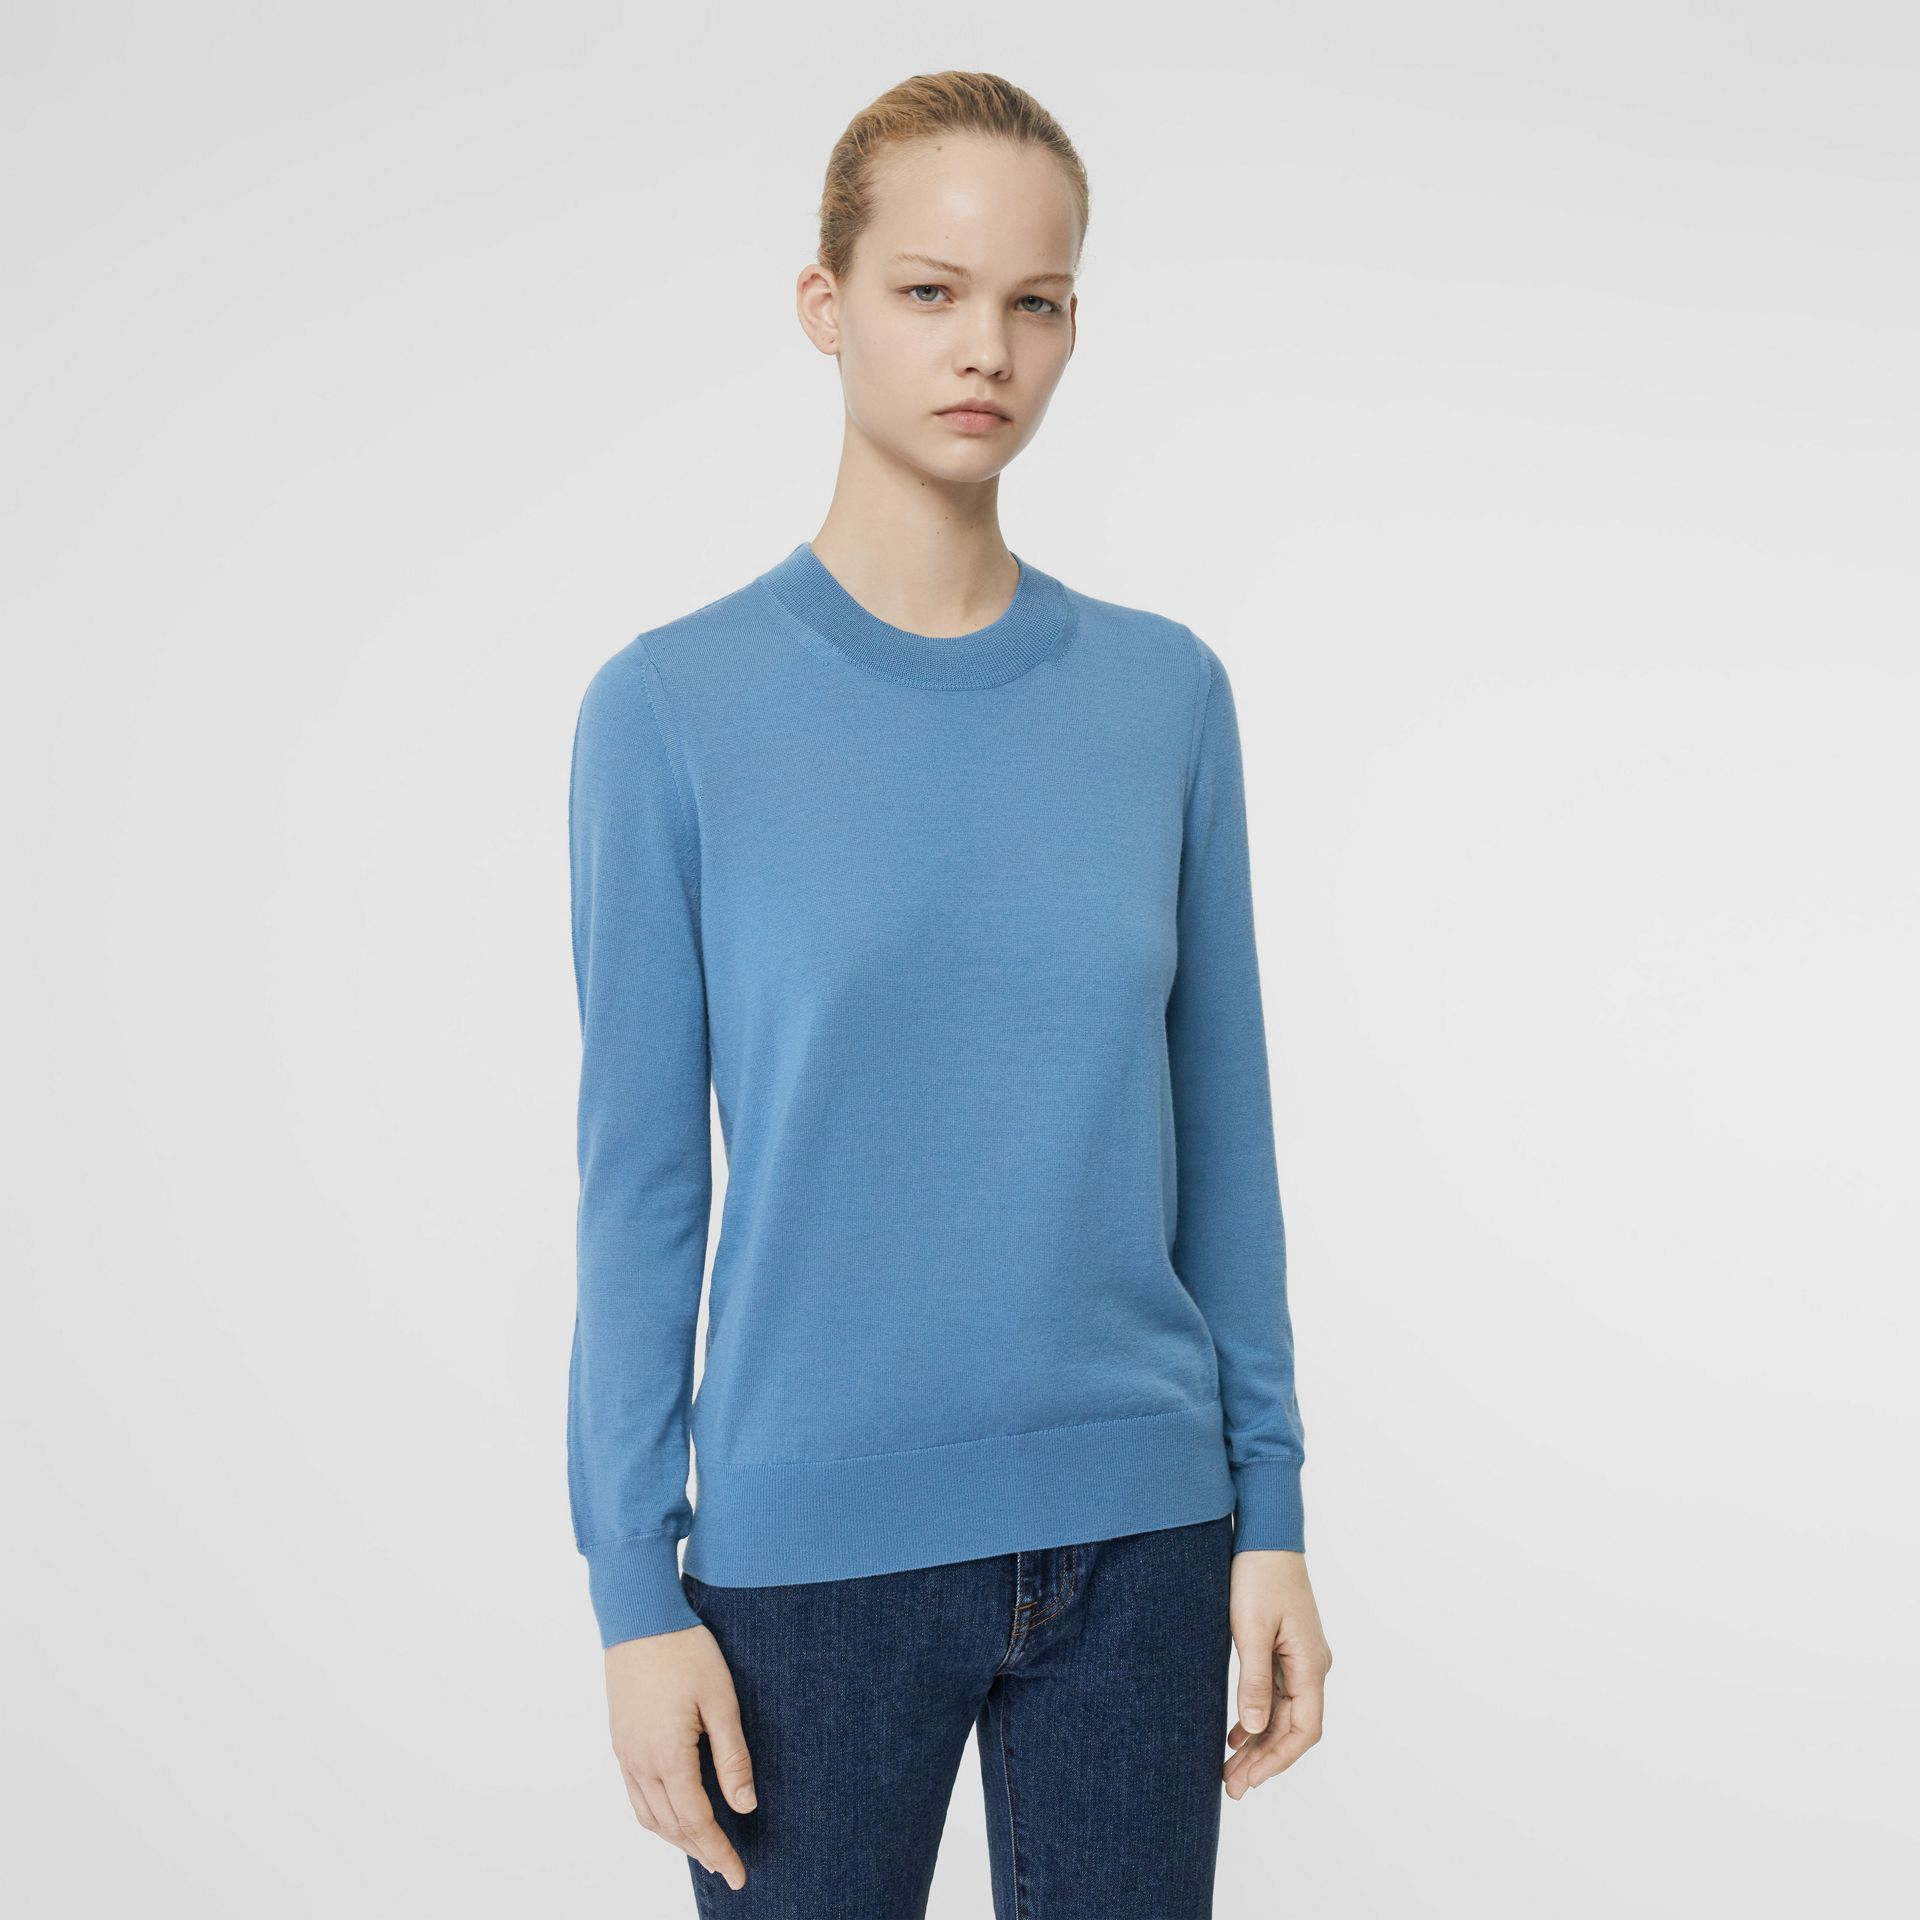 Logo Detail Merino Wool Sweater in Pebble Blue - Women | Burberry - gallery image 4